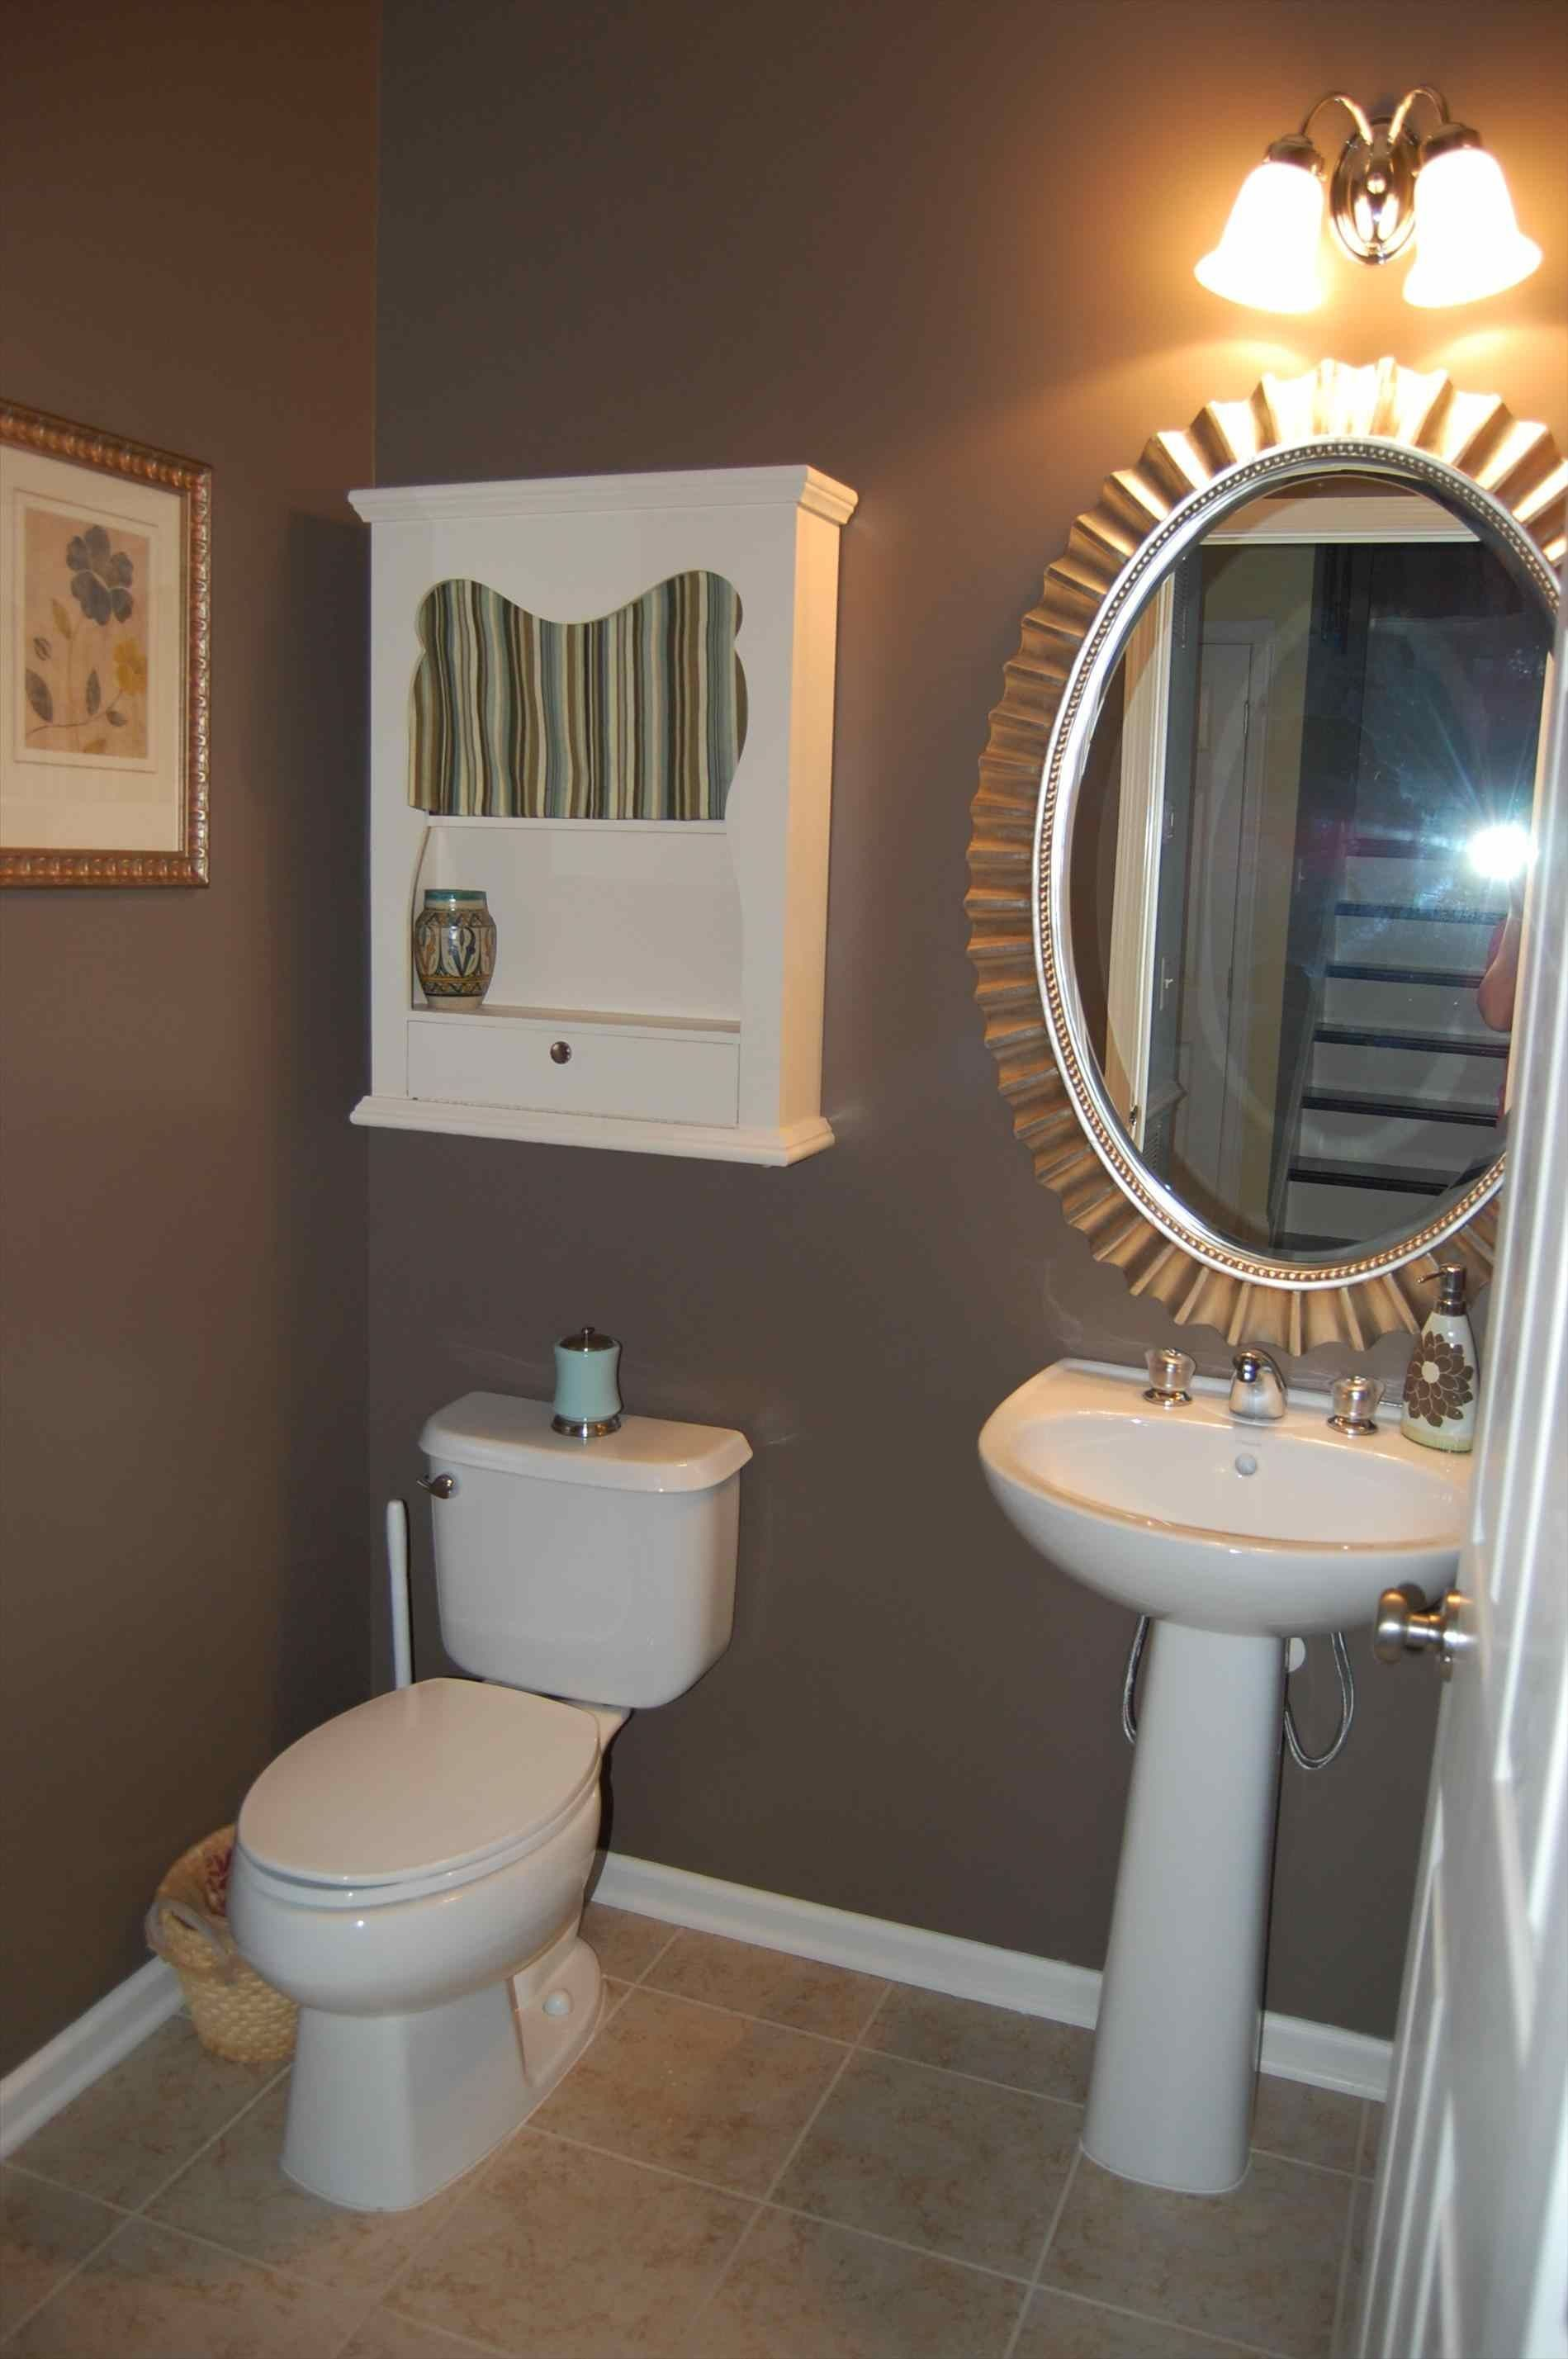 Paint Colors For A Small Bathroom With No Natural Light Small Bathroom Colors Bathroom Colors Bathroom Paint Colors